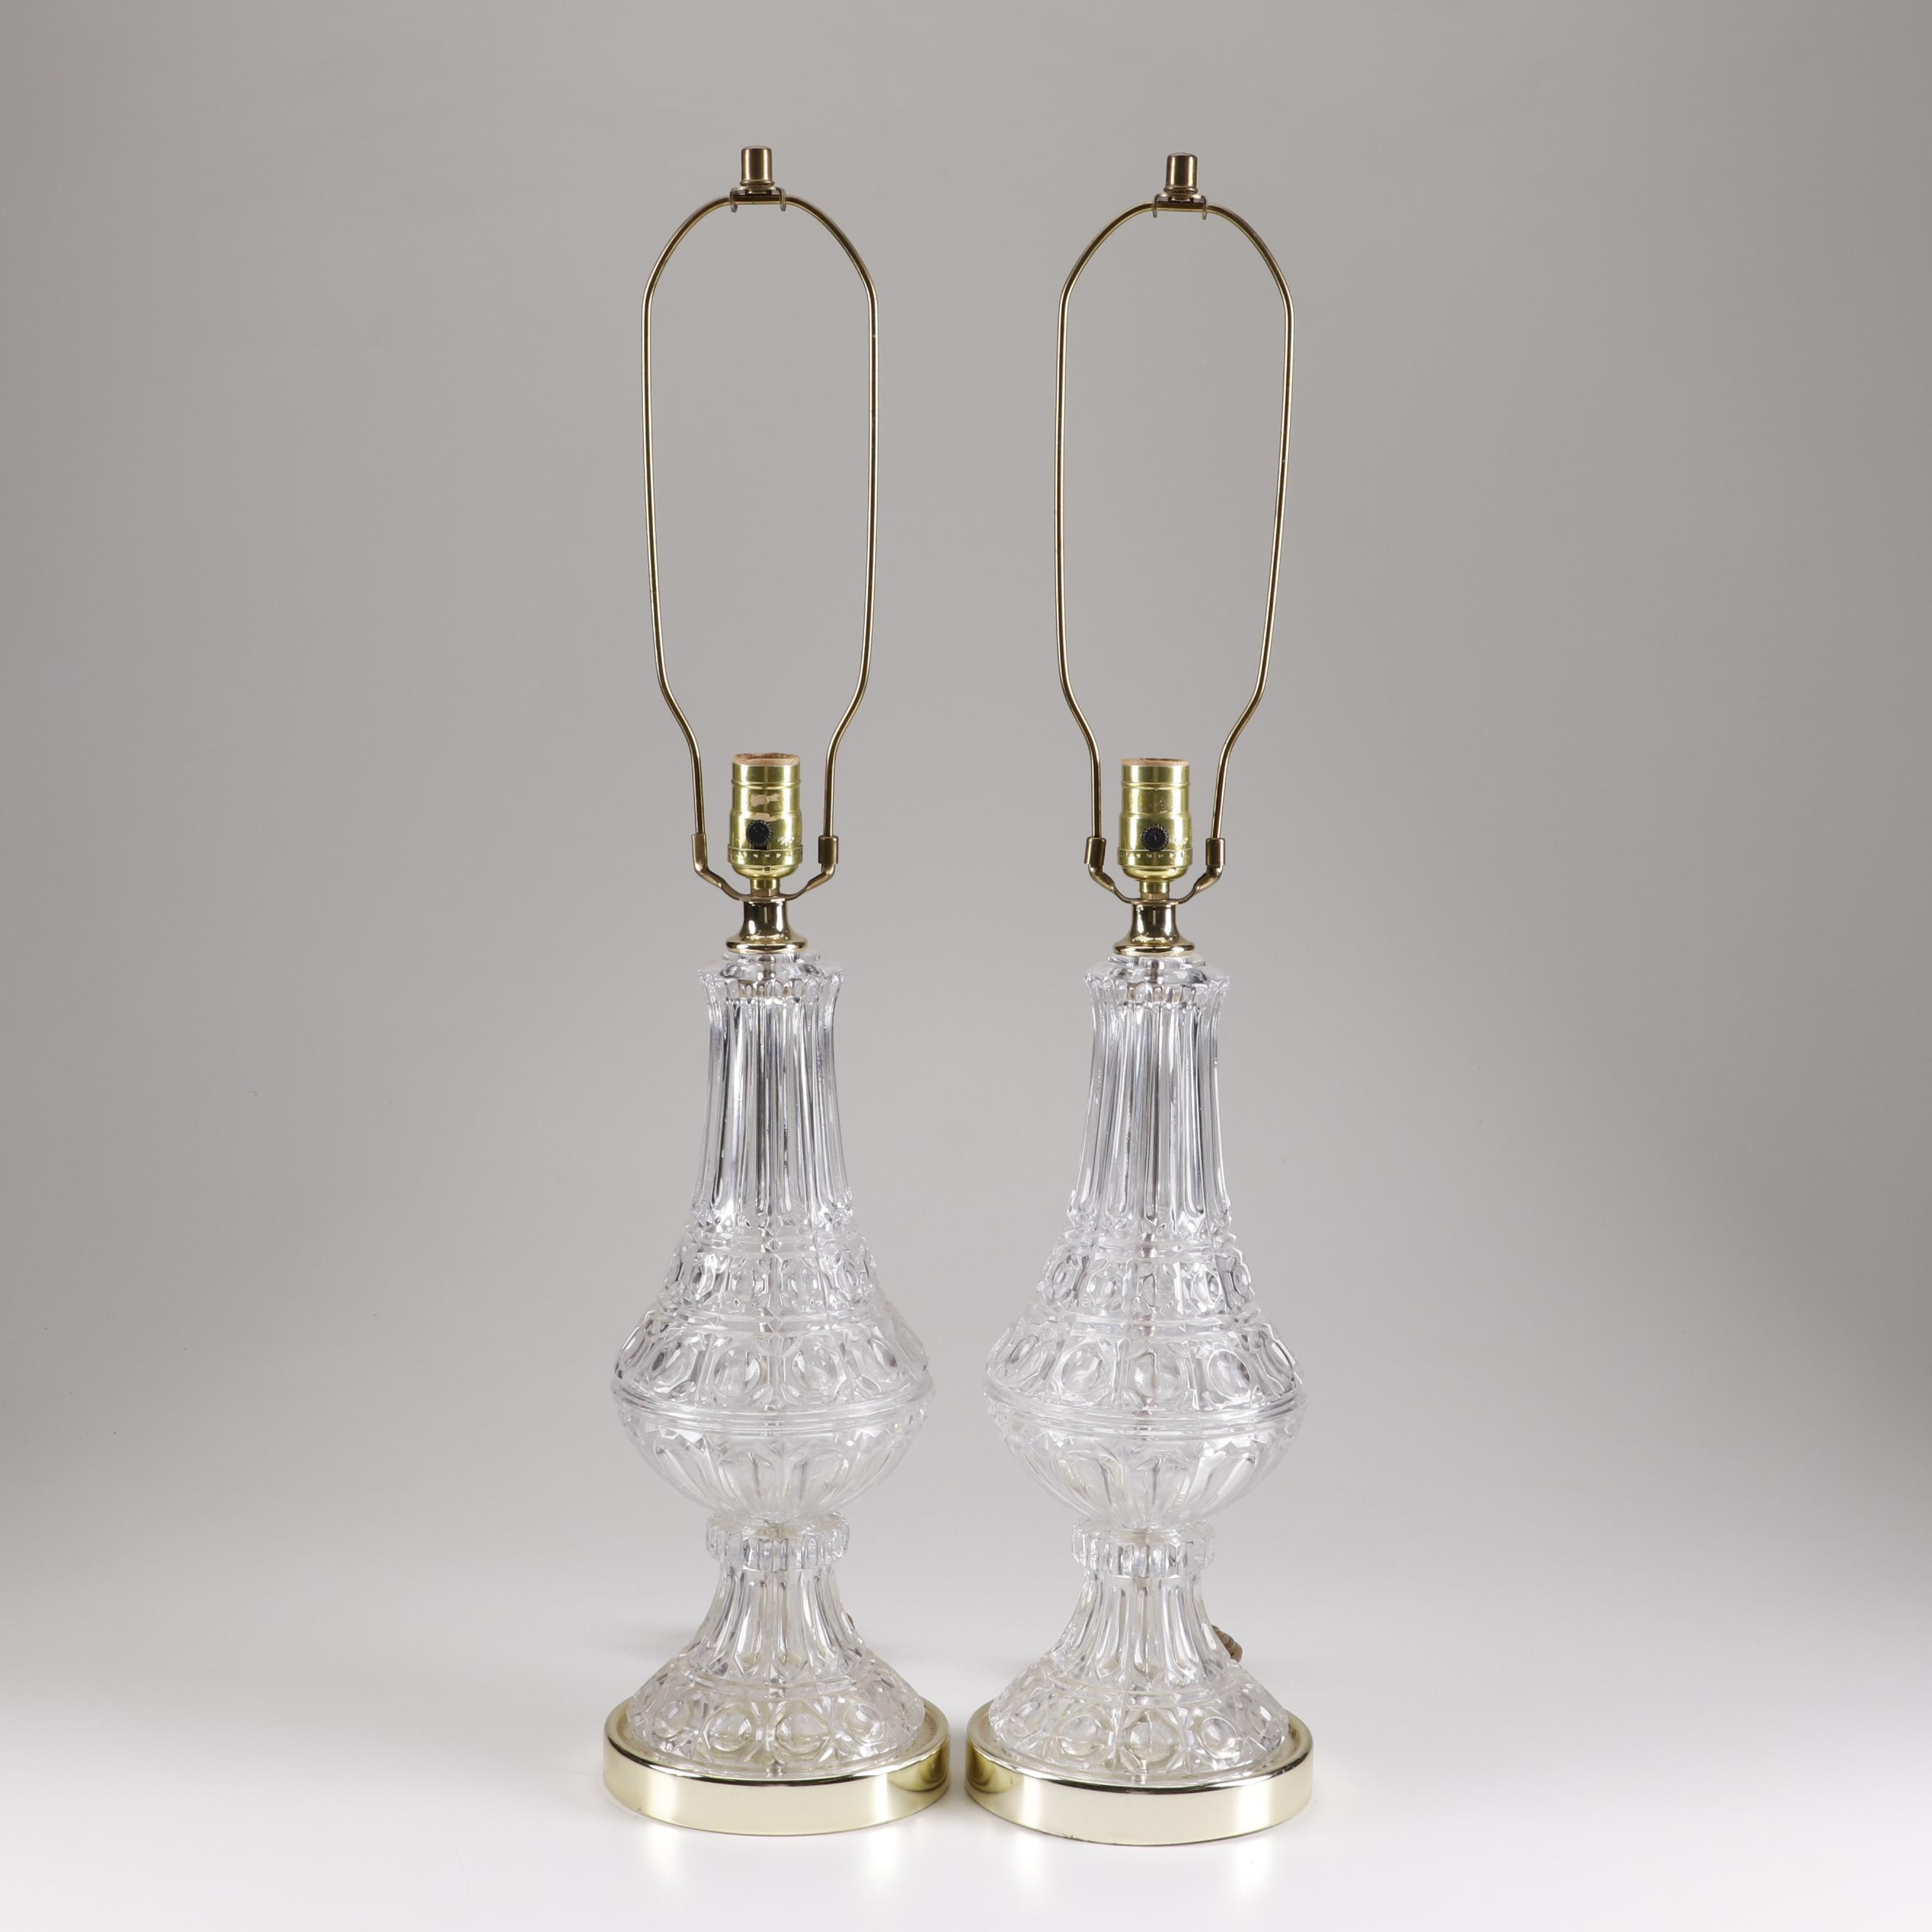 Pressed Glass Table Lamps, Mid 20th Century